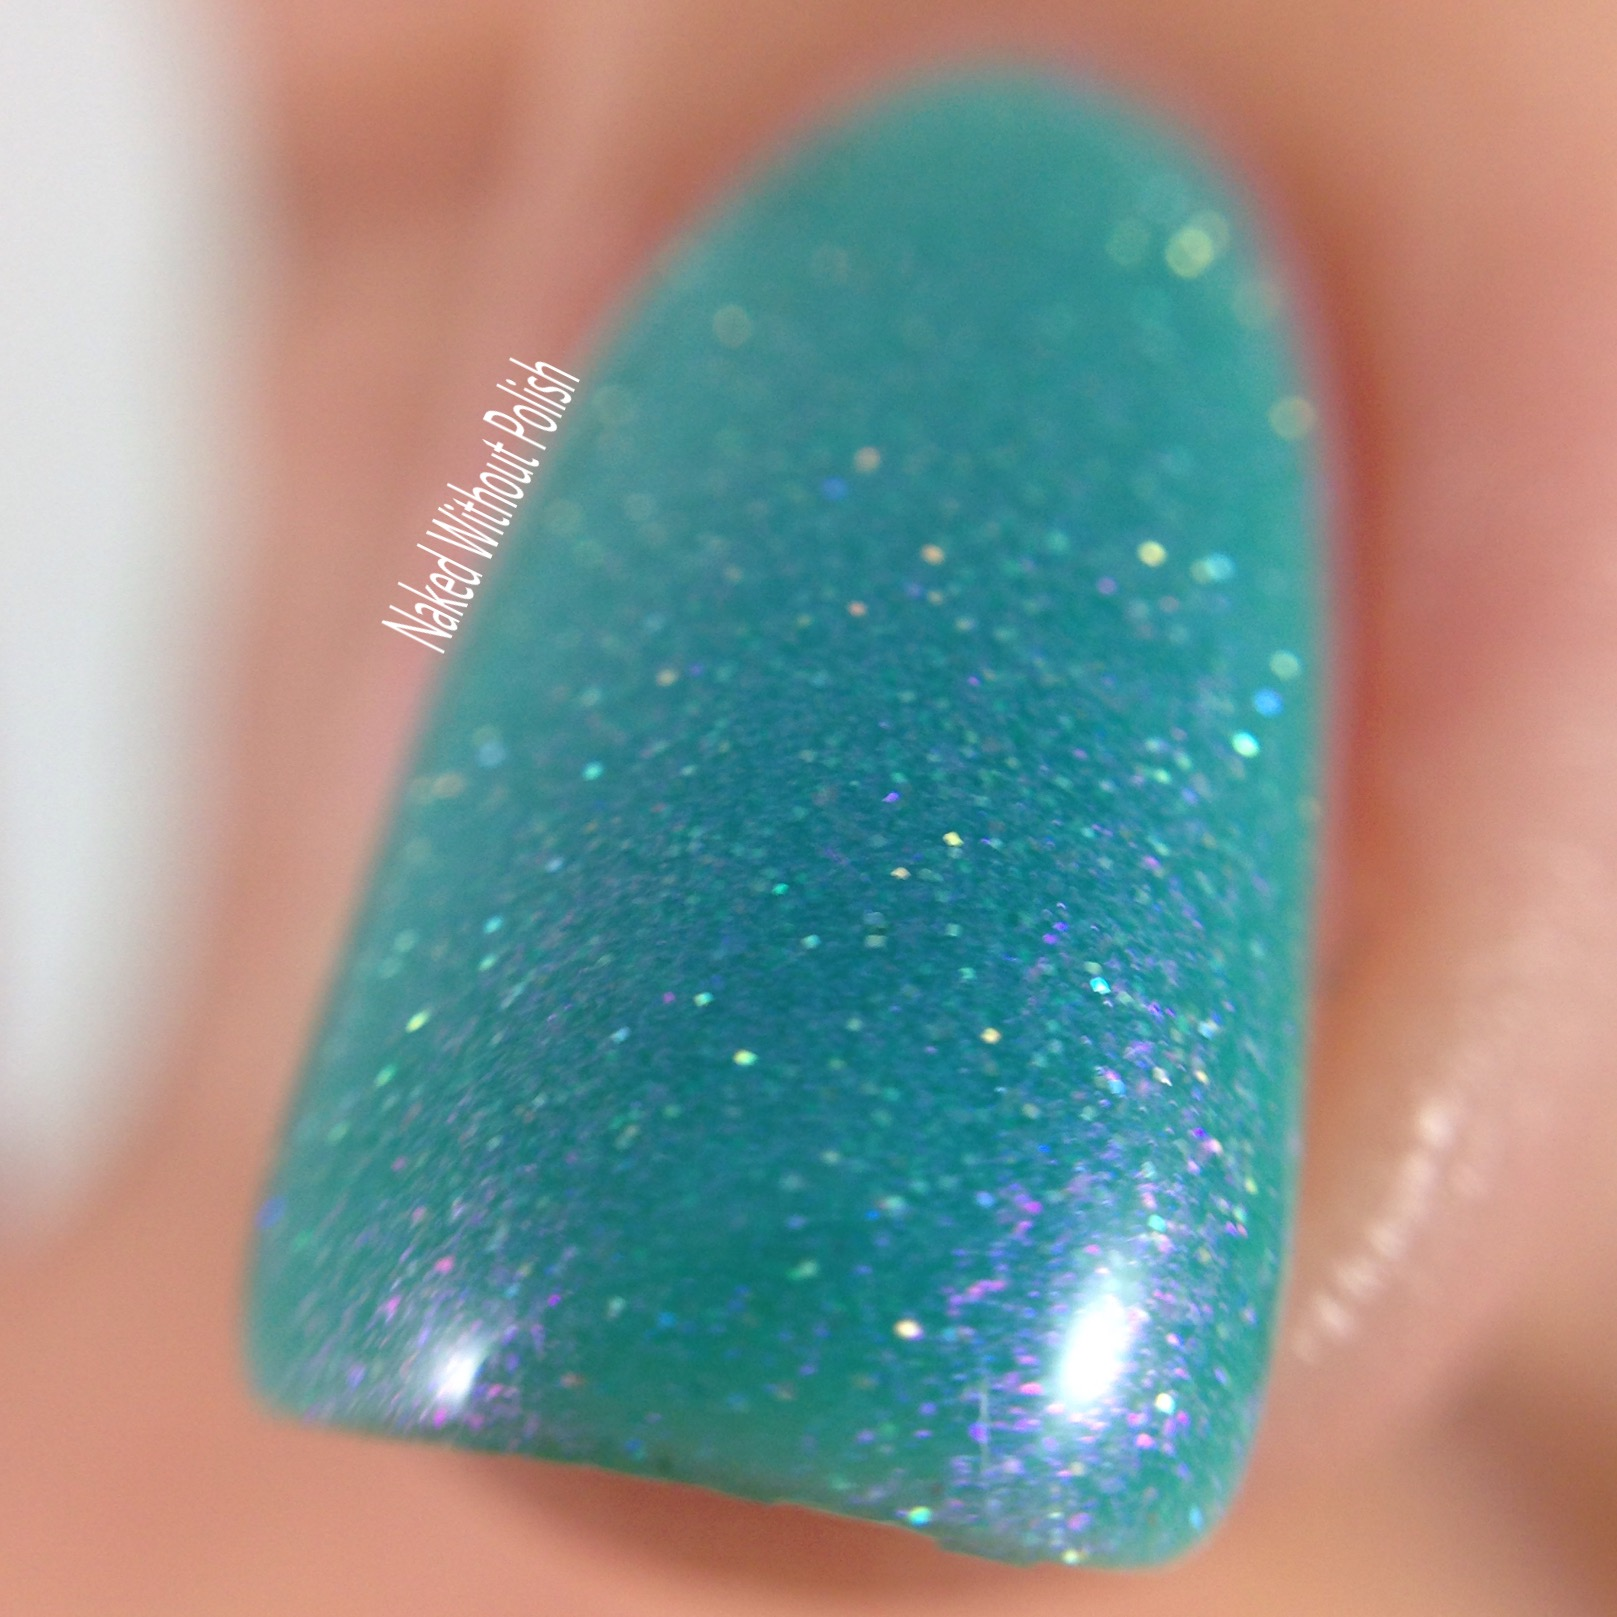 Lollipop-Posse-Lacquer-But-My-Hands-are-Busy-in-the-Air-5